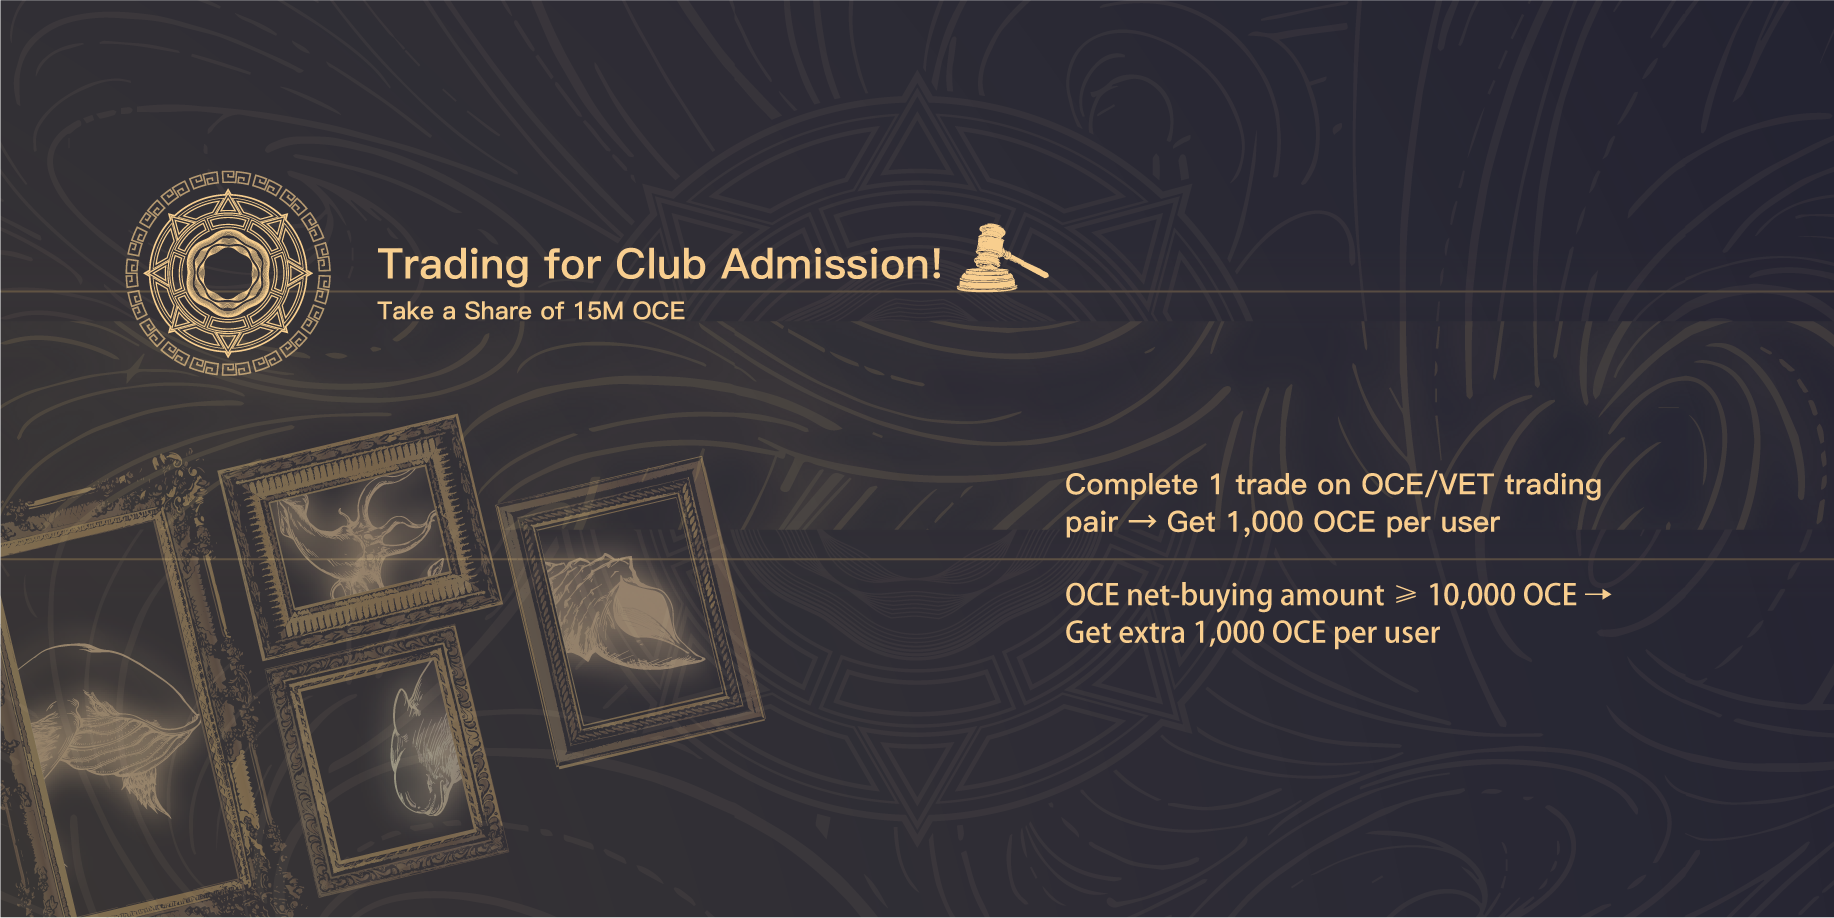 __-trading_for_club_admission.png